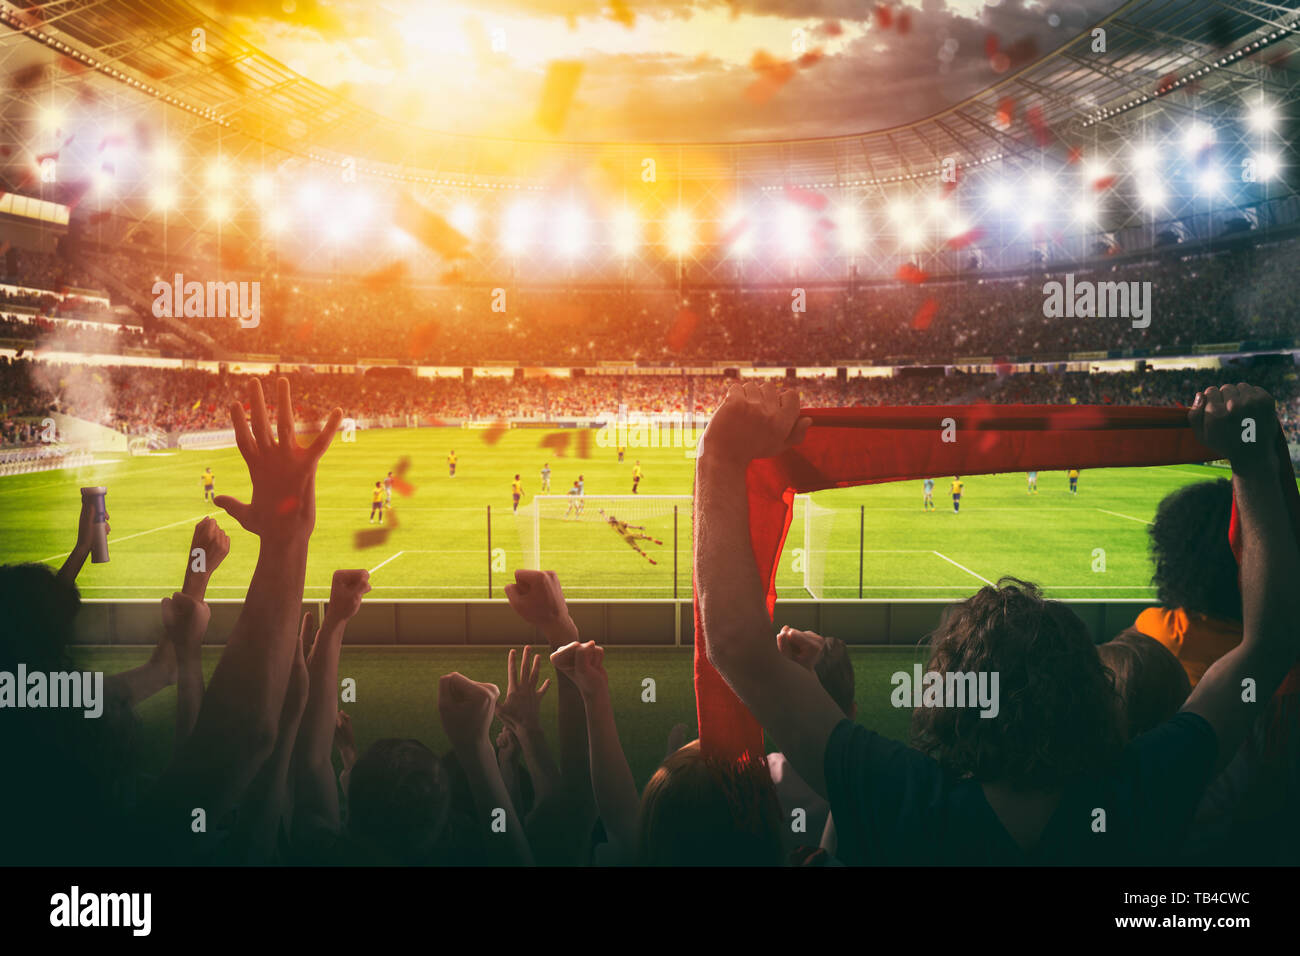 Football scene at night match with with cheering fans at the stadium - Stock Image